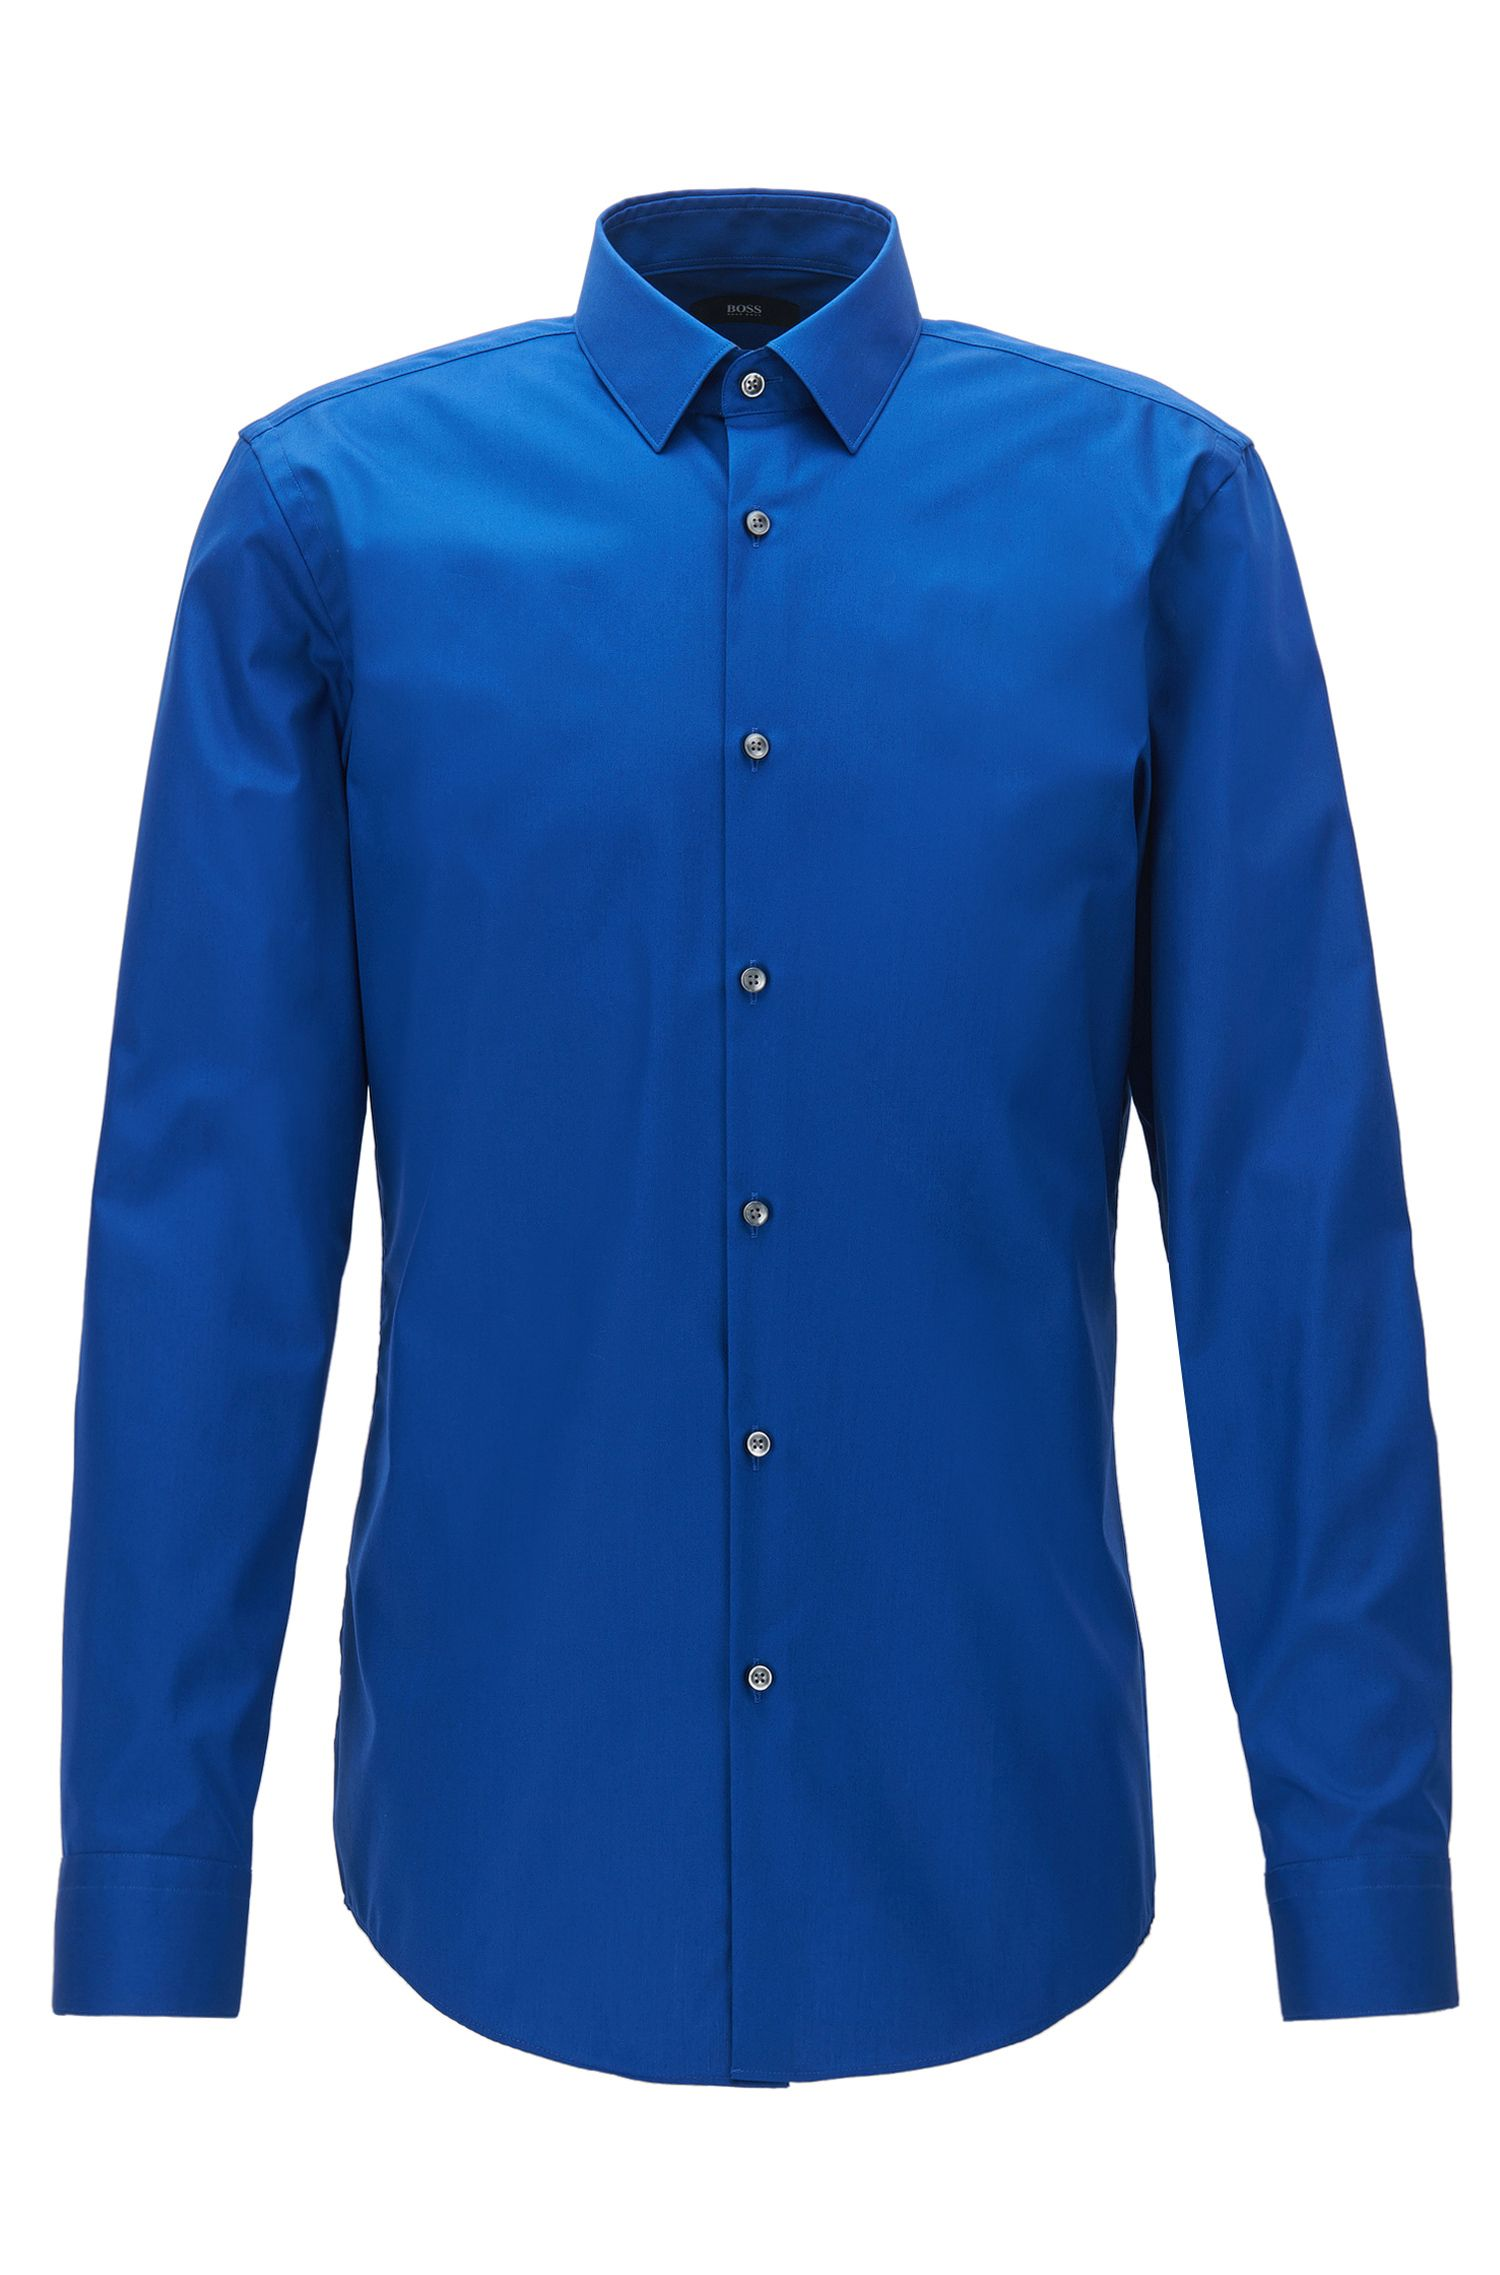 Slim-fit shirt in easy-iron cotton poplin